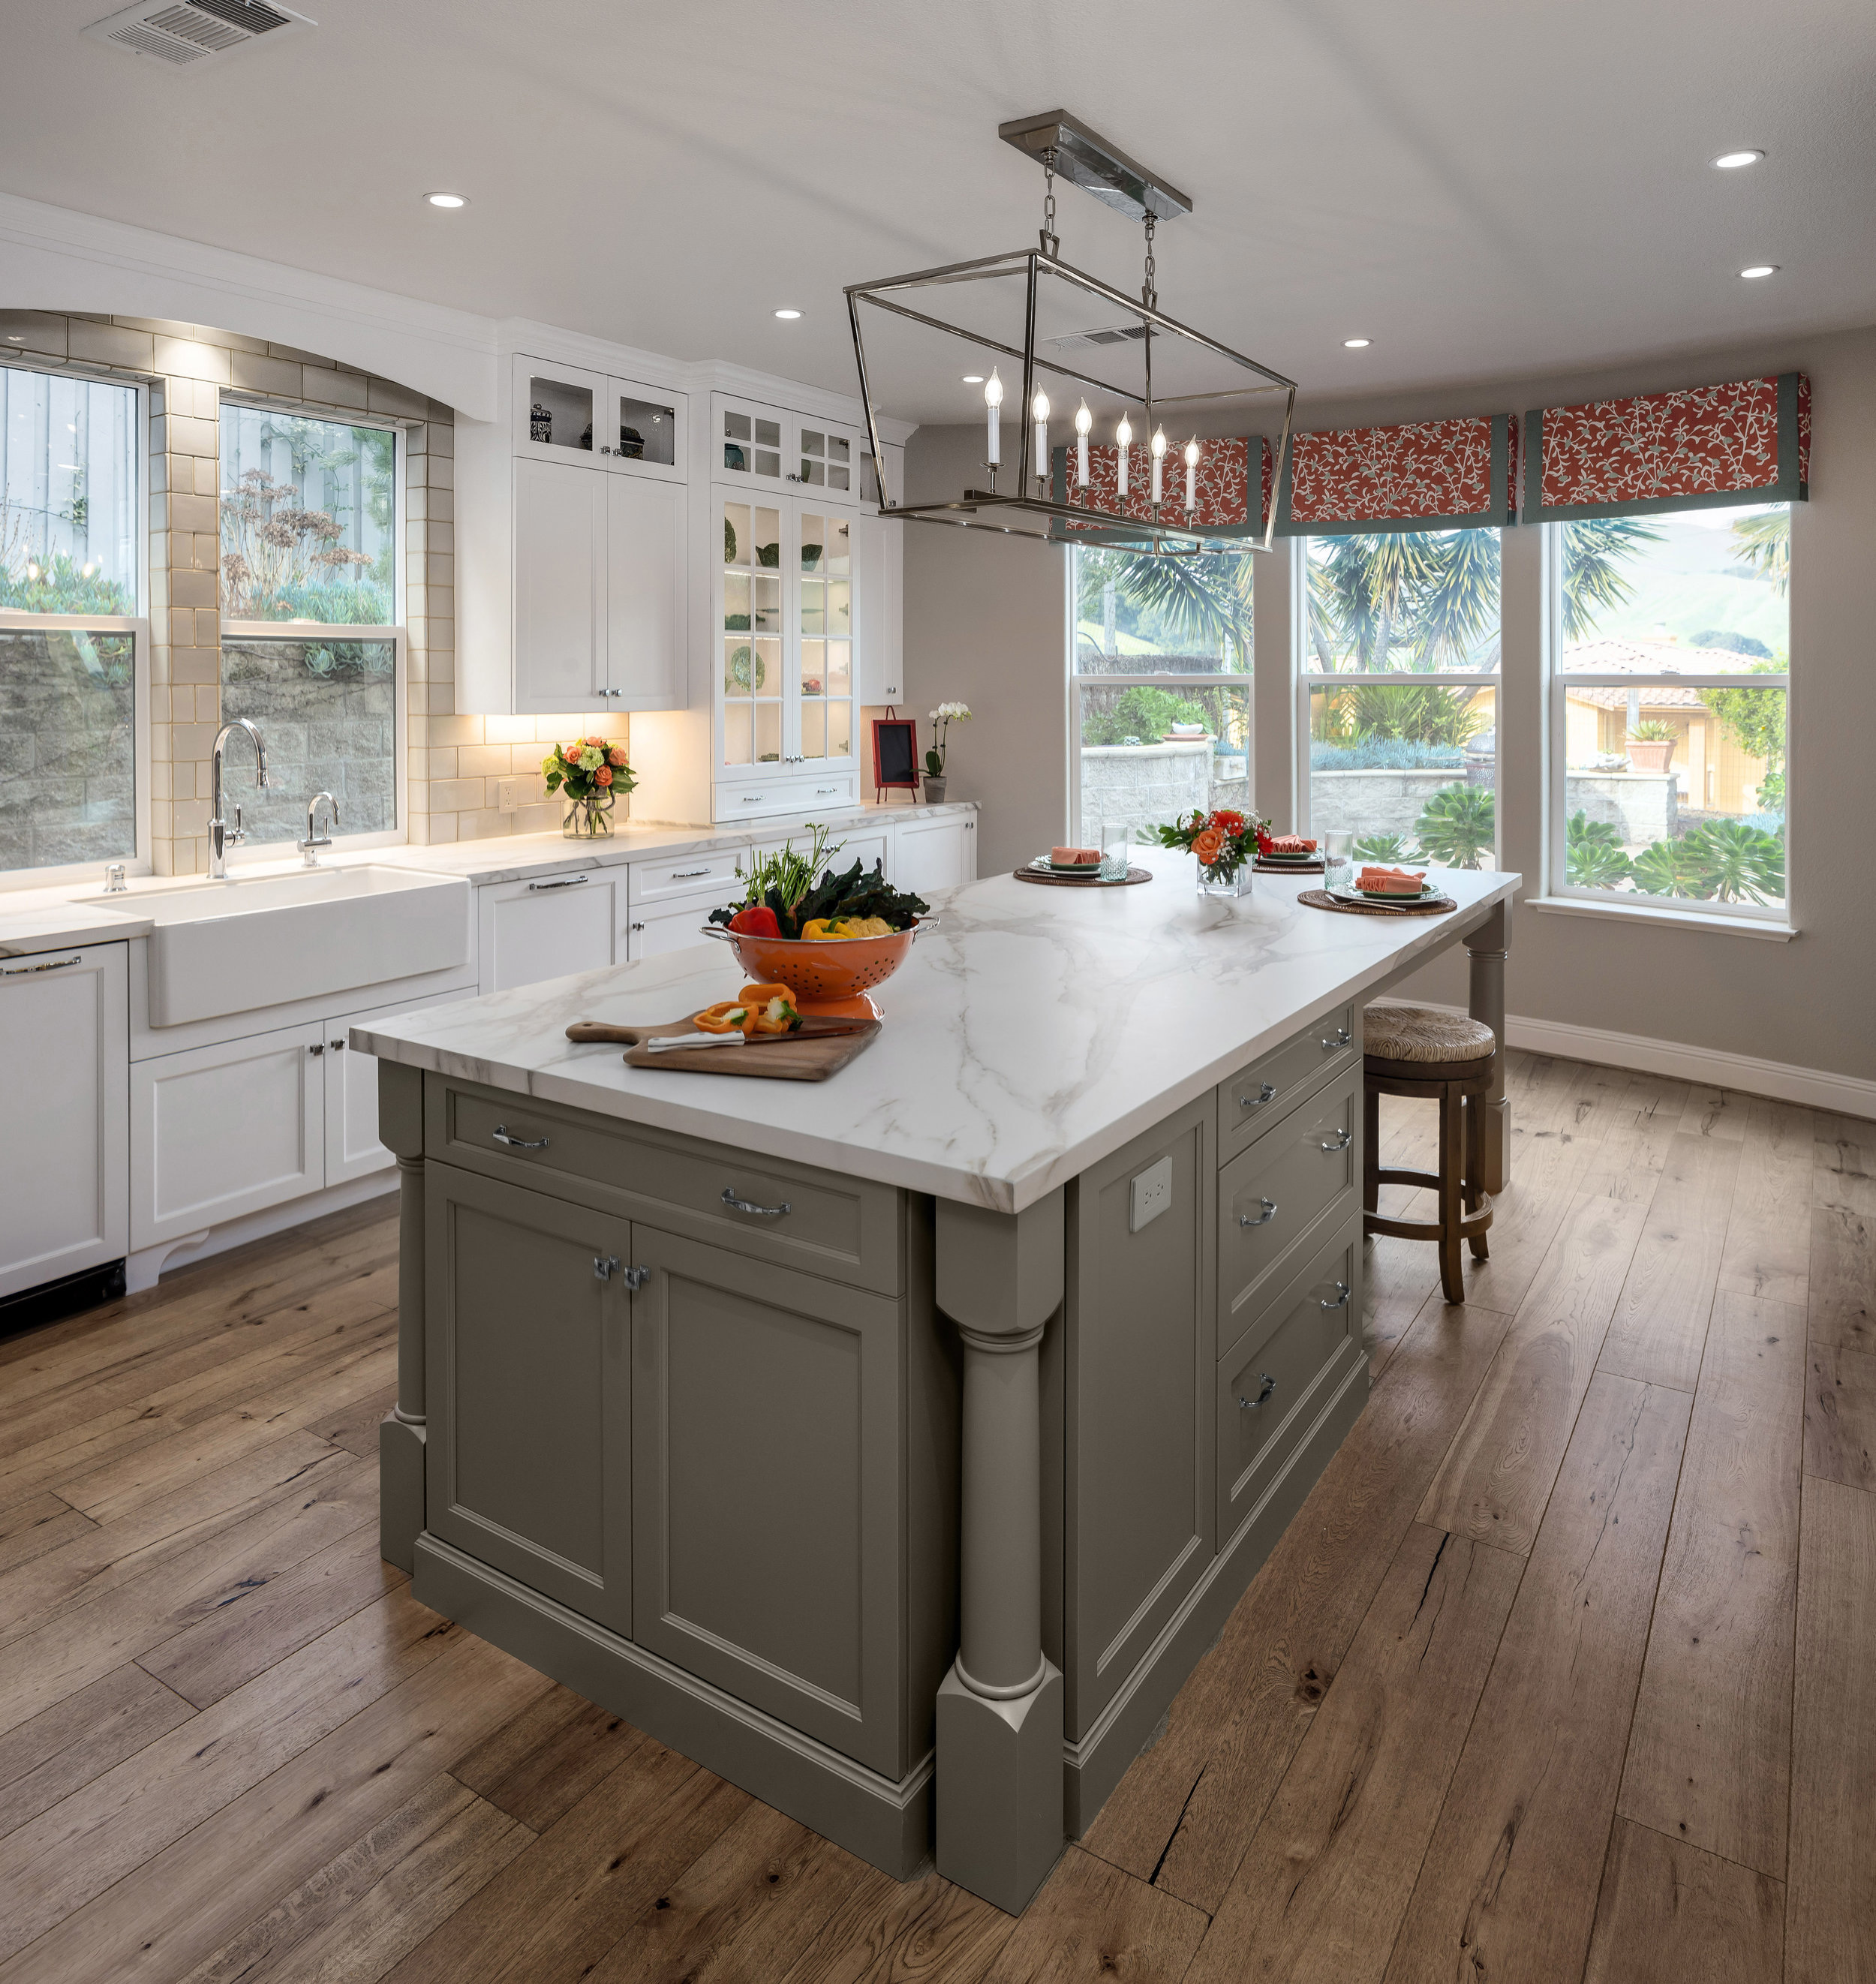 How The Right Kitchen Wall Color And The Tailored Window Valances Make For A Spectacular Kitchen Design Marie Antoinette Interiors